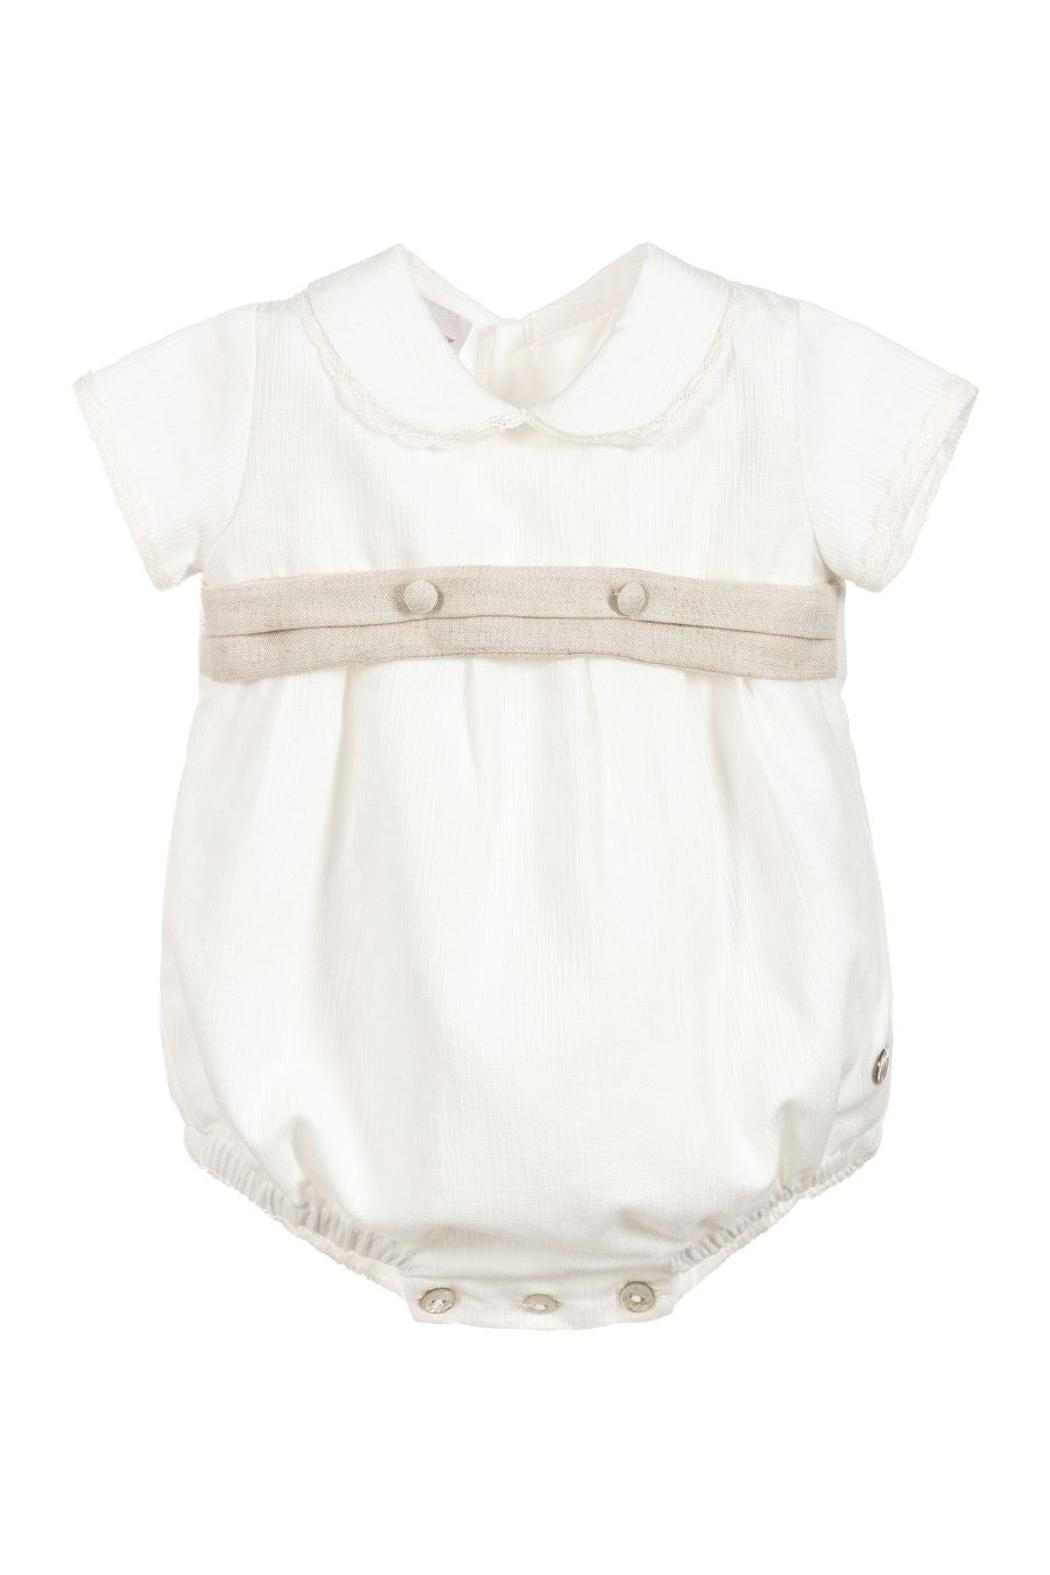 Paz Rodriguez Ivory Romper. - Front Cropped Image